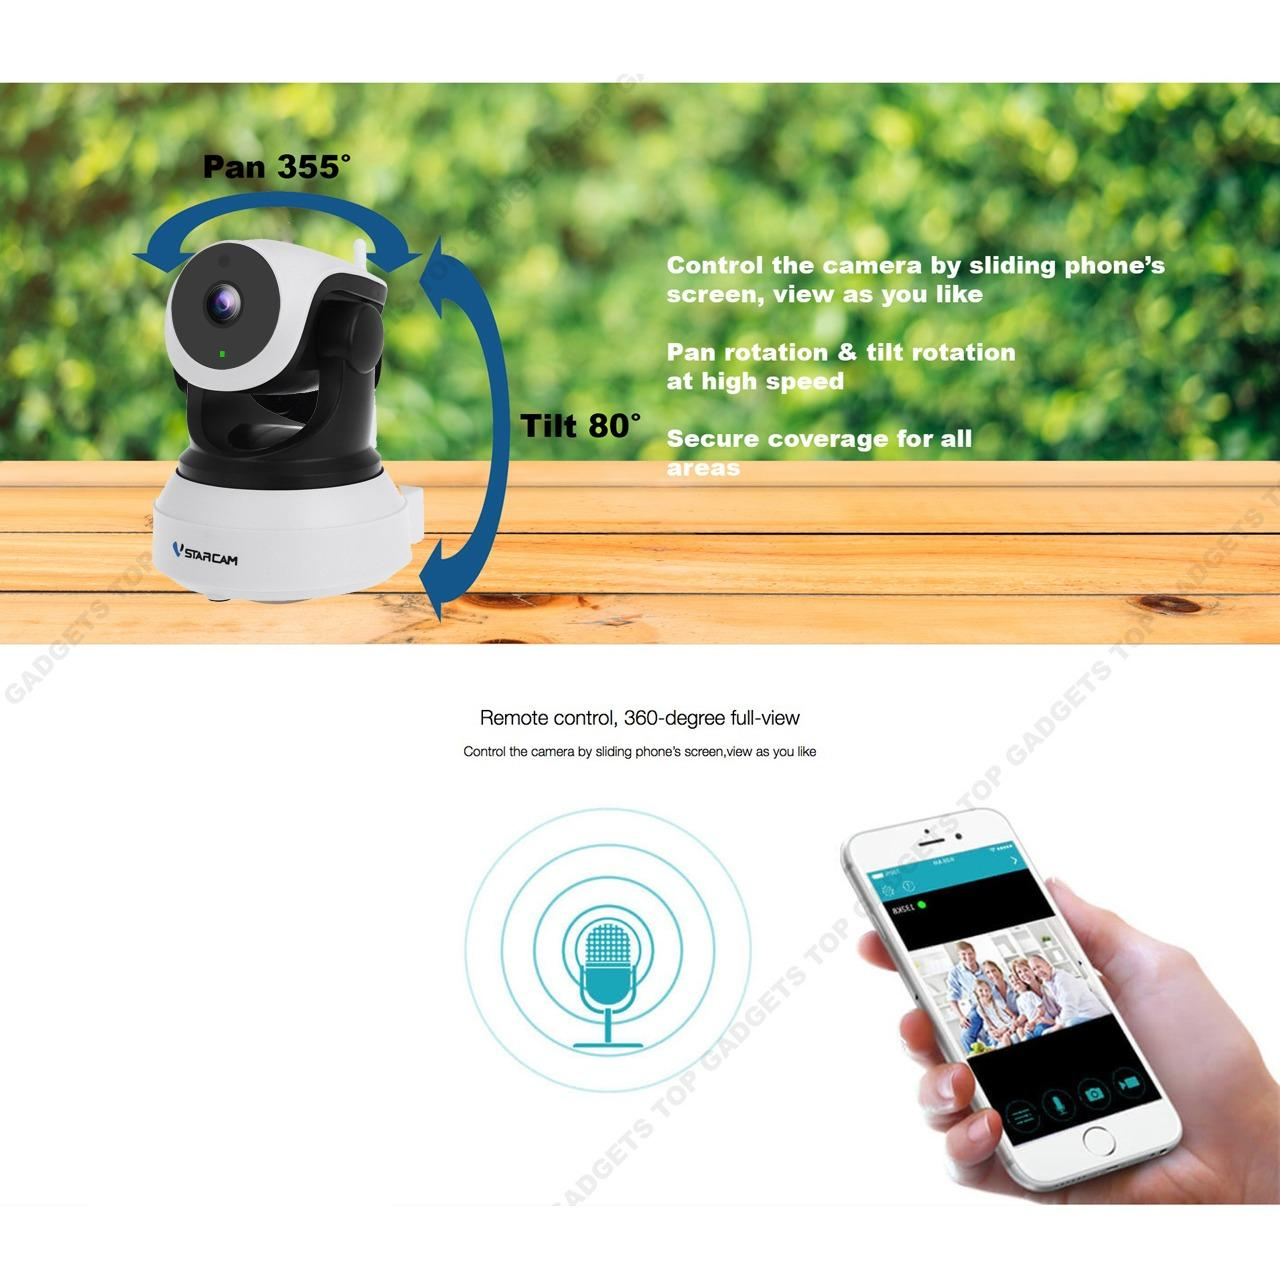 Vstarcam C7824WIP * SG SELLER * Latest 2018 Wireless IP Camera CCTV Camera 2 Way Communication